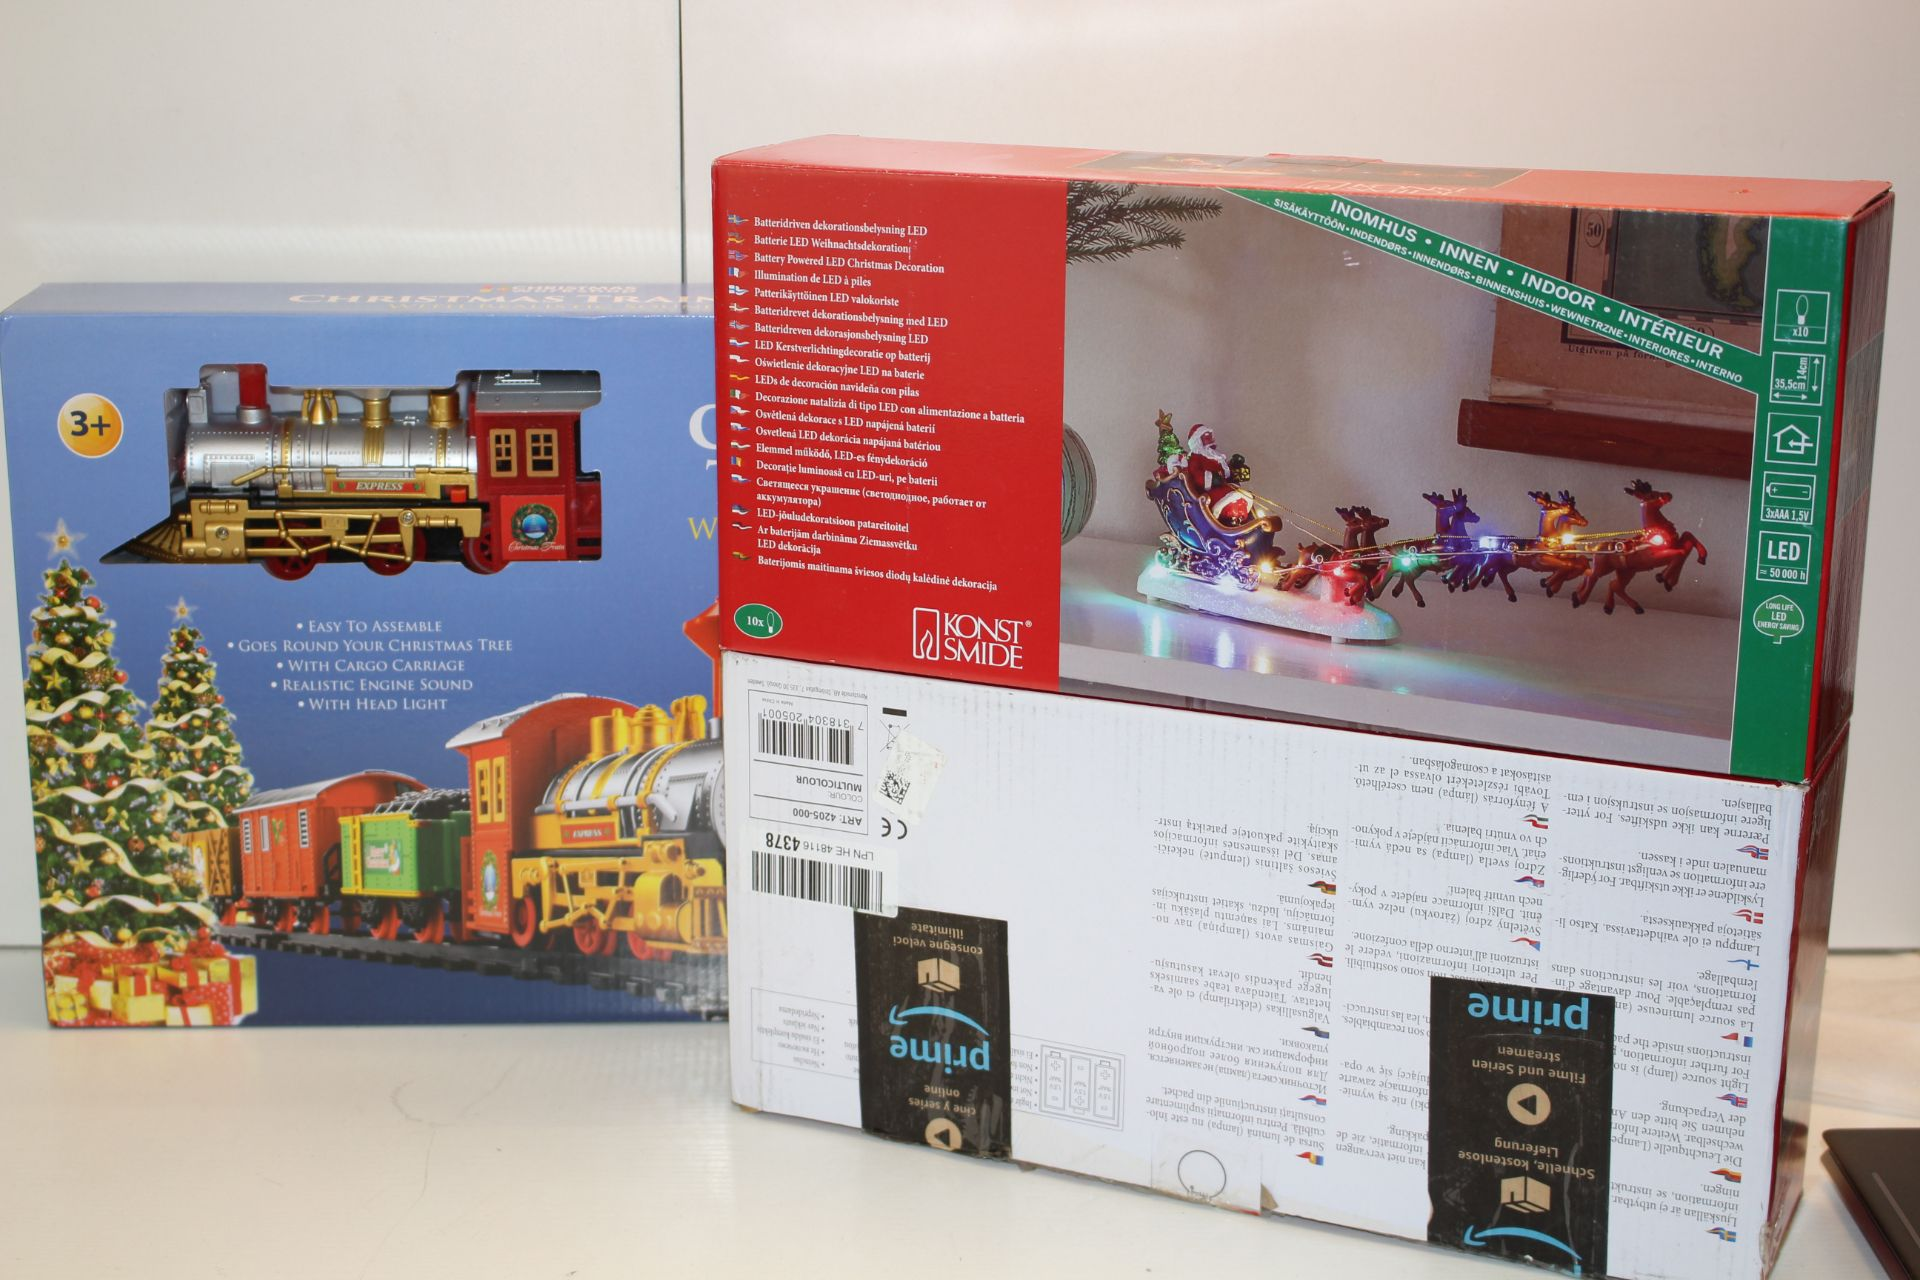 X3 BOXED CHRISTMAS ITEMS INCLUDING TRAIN SET AND OTHER, PLEASE SEE IMAGE Condition ReportAppraisal